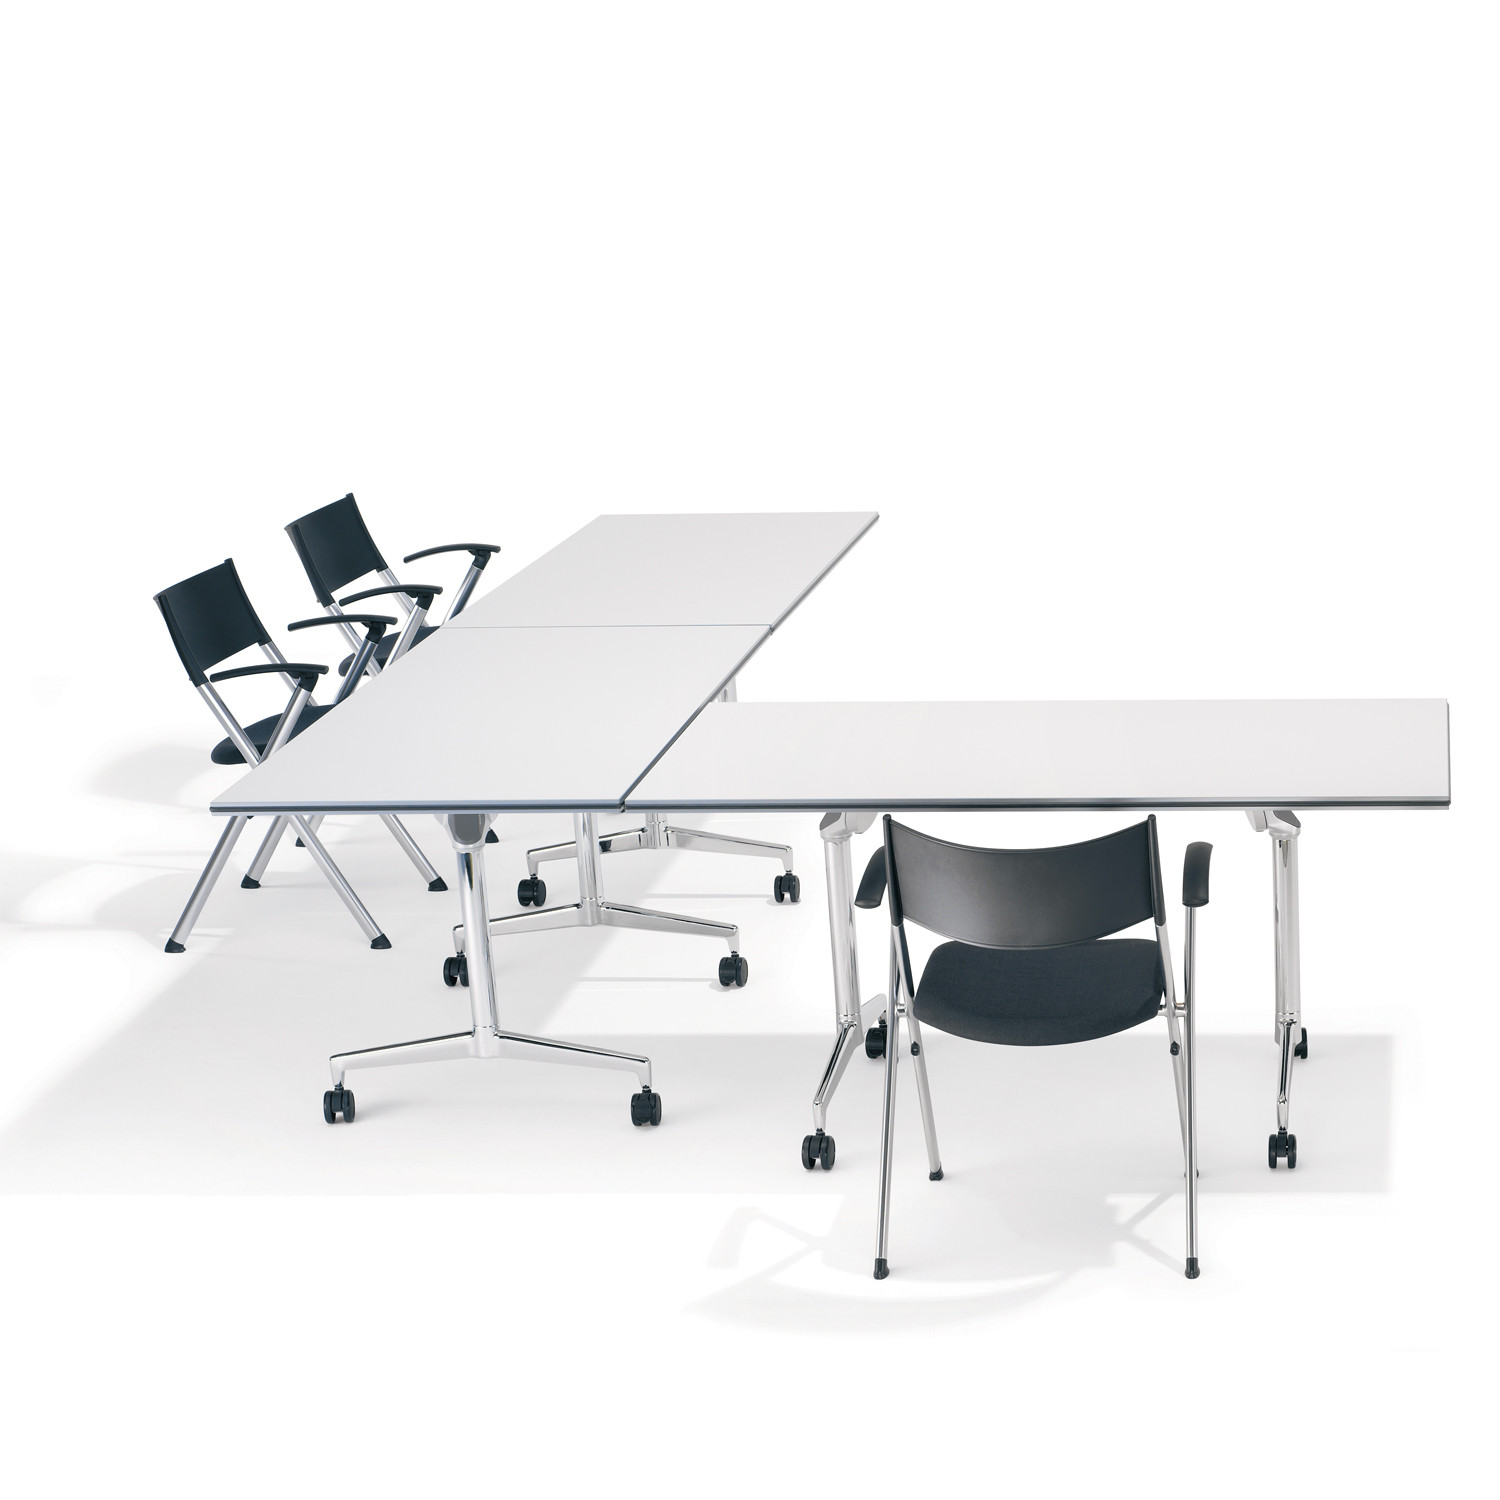 9000 Roll 'n' Meet Tables are suitable for Training Rooms